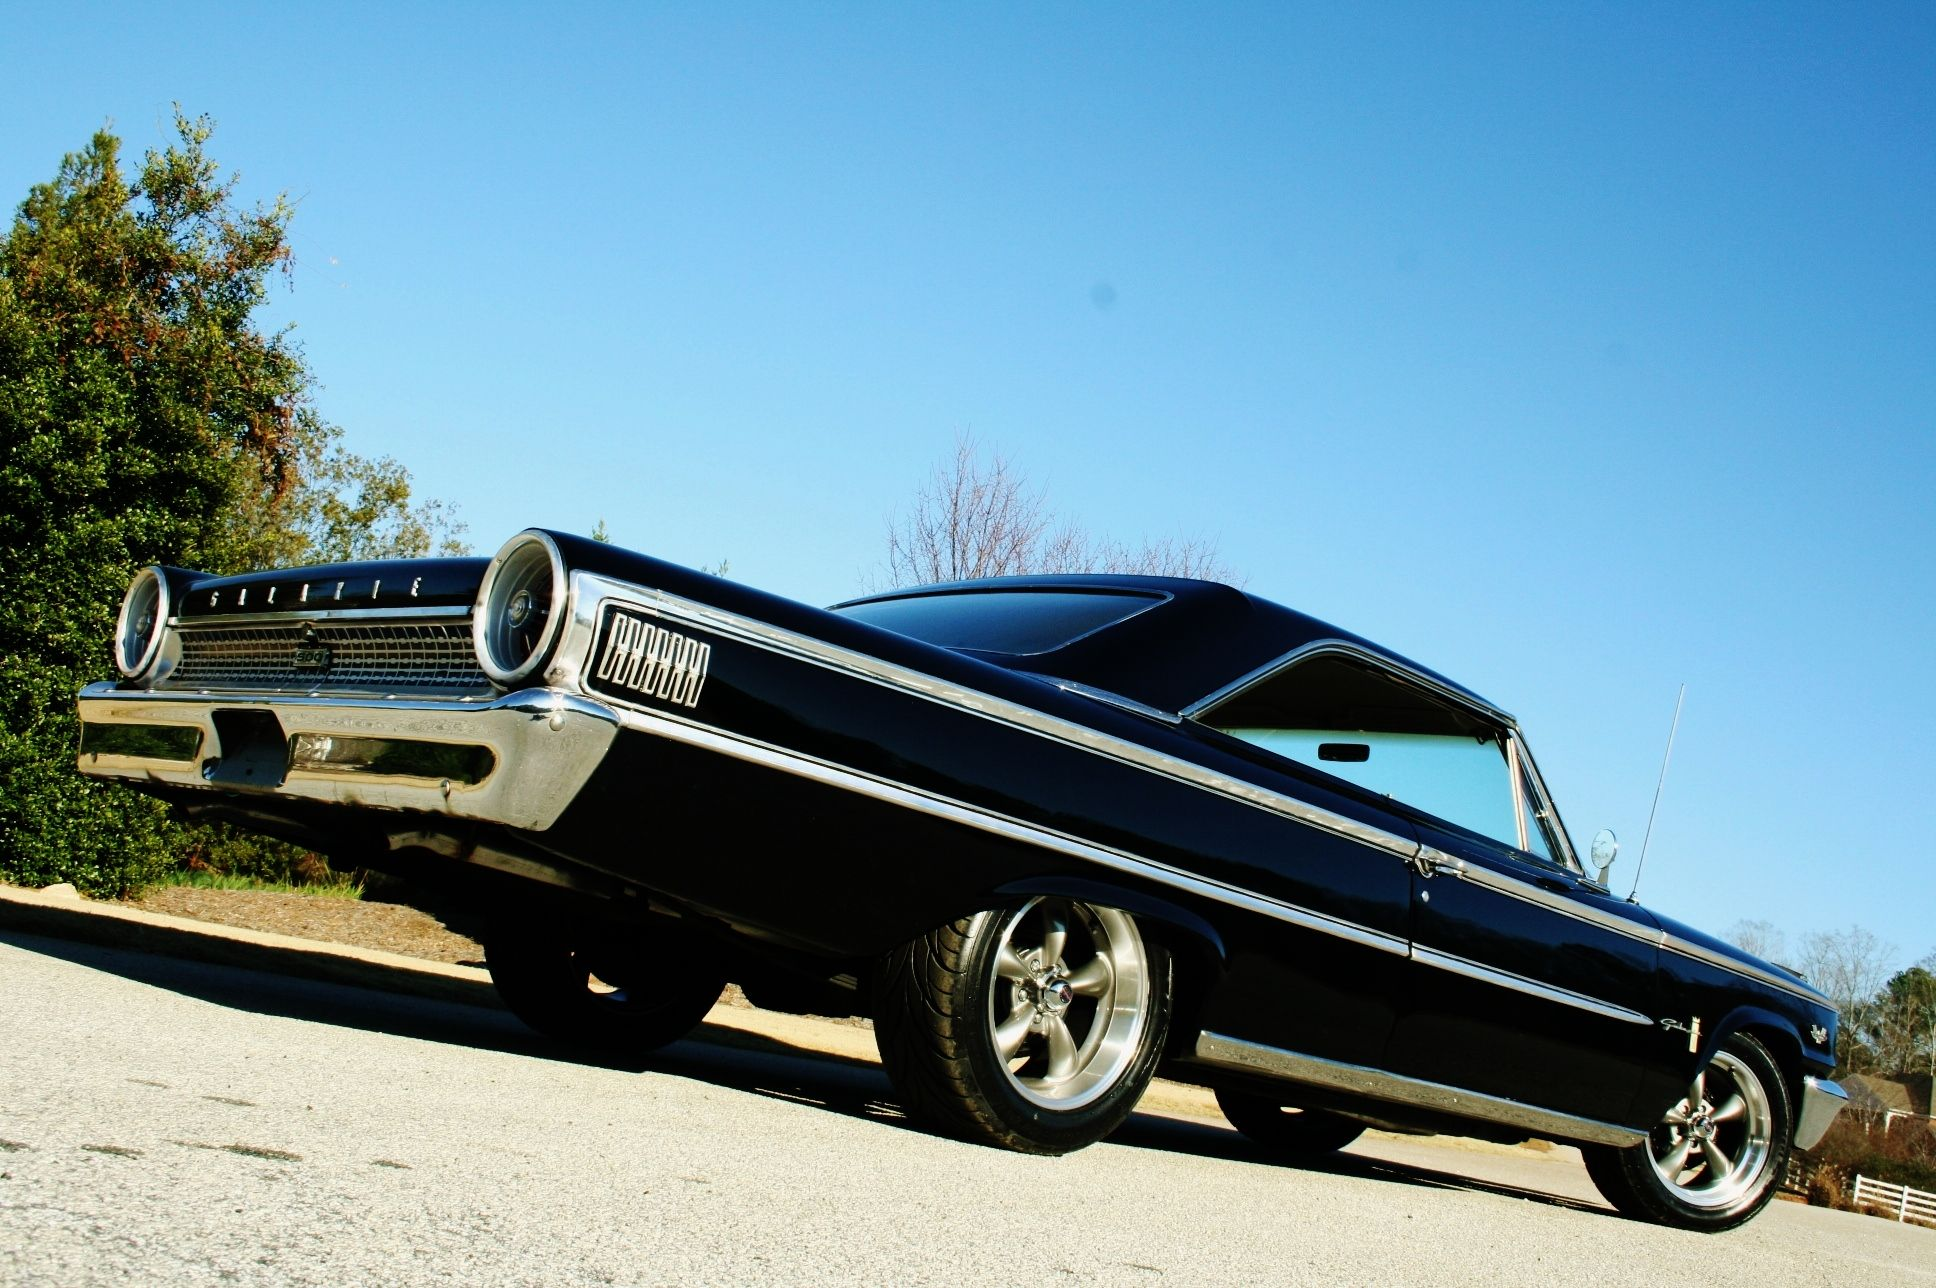 39 63 ford galaxie 500 ford full body muscle performance. Black Bedroom Furniture Sets. Home Design Ideas